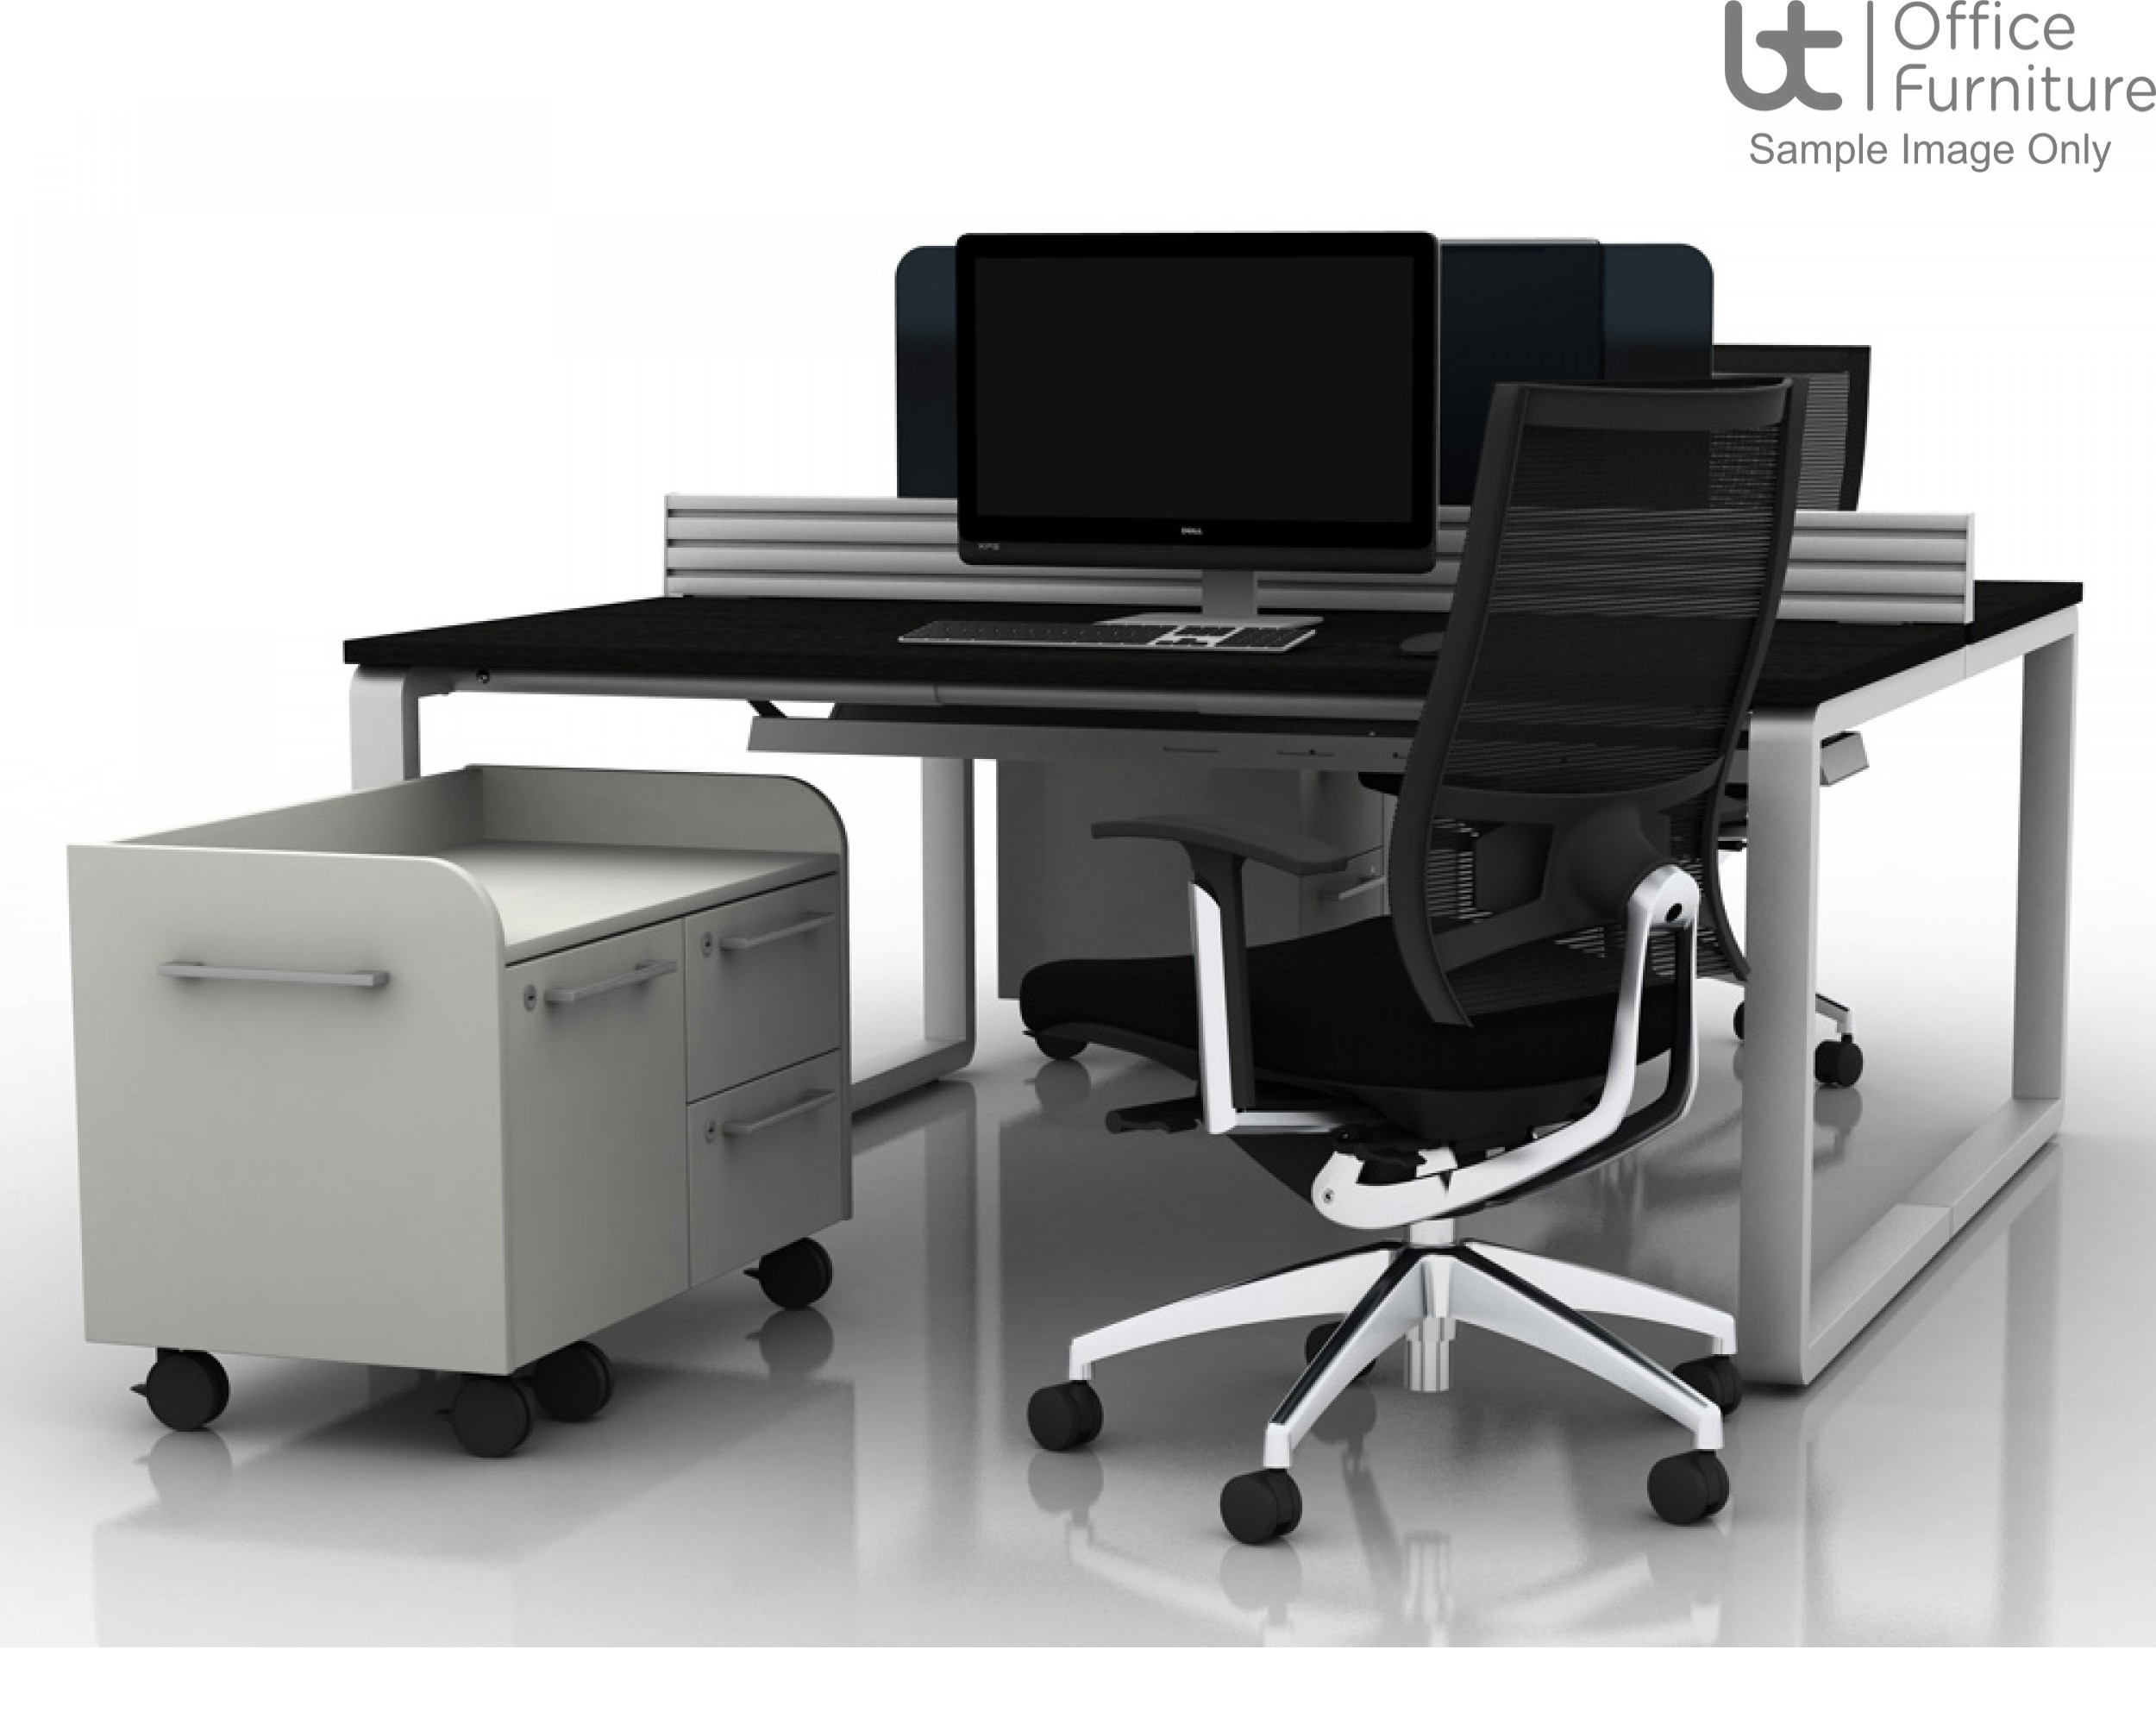 600 & 800mm Deep With side opening tambour and 3 Drawer Mobile Pedestal (Right Hand Illustrated)